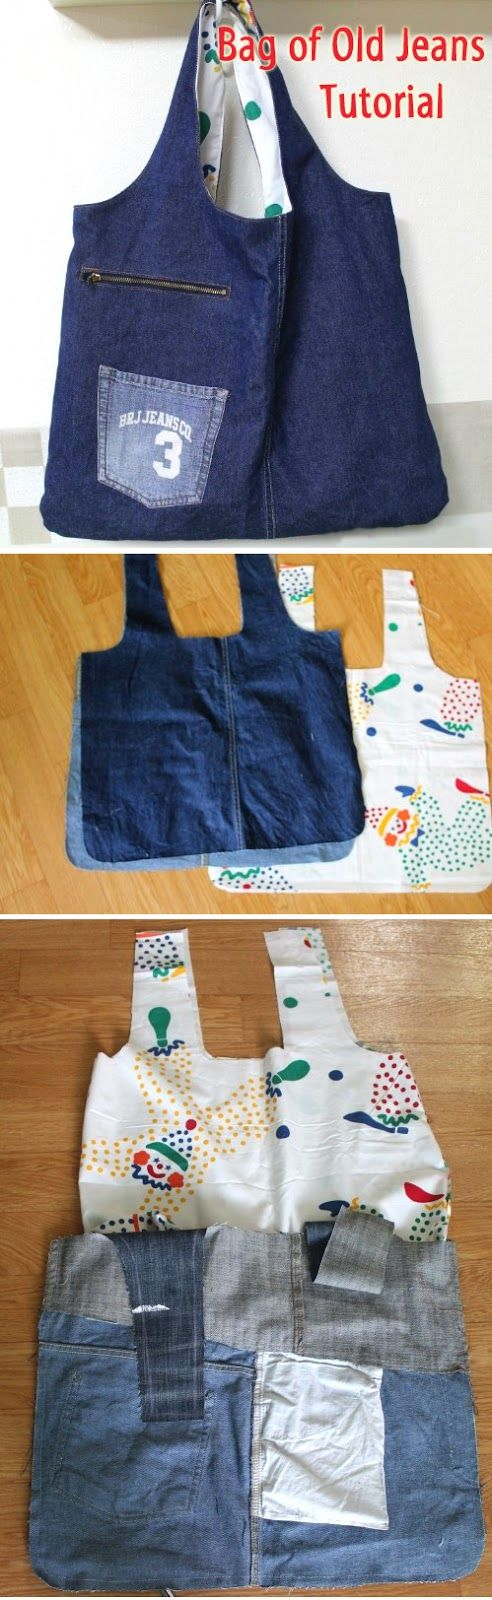 25+ Best Ideas About Sewing Jeans On Pinterest  Hem Jeans, Hemming Jeans  And Zipper Tutorial